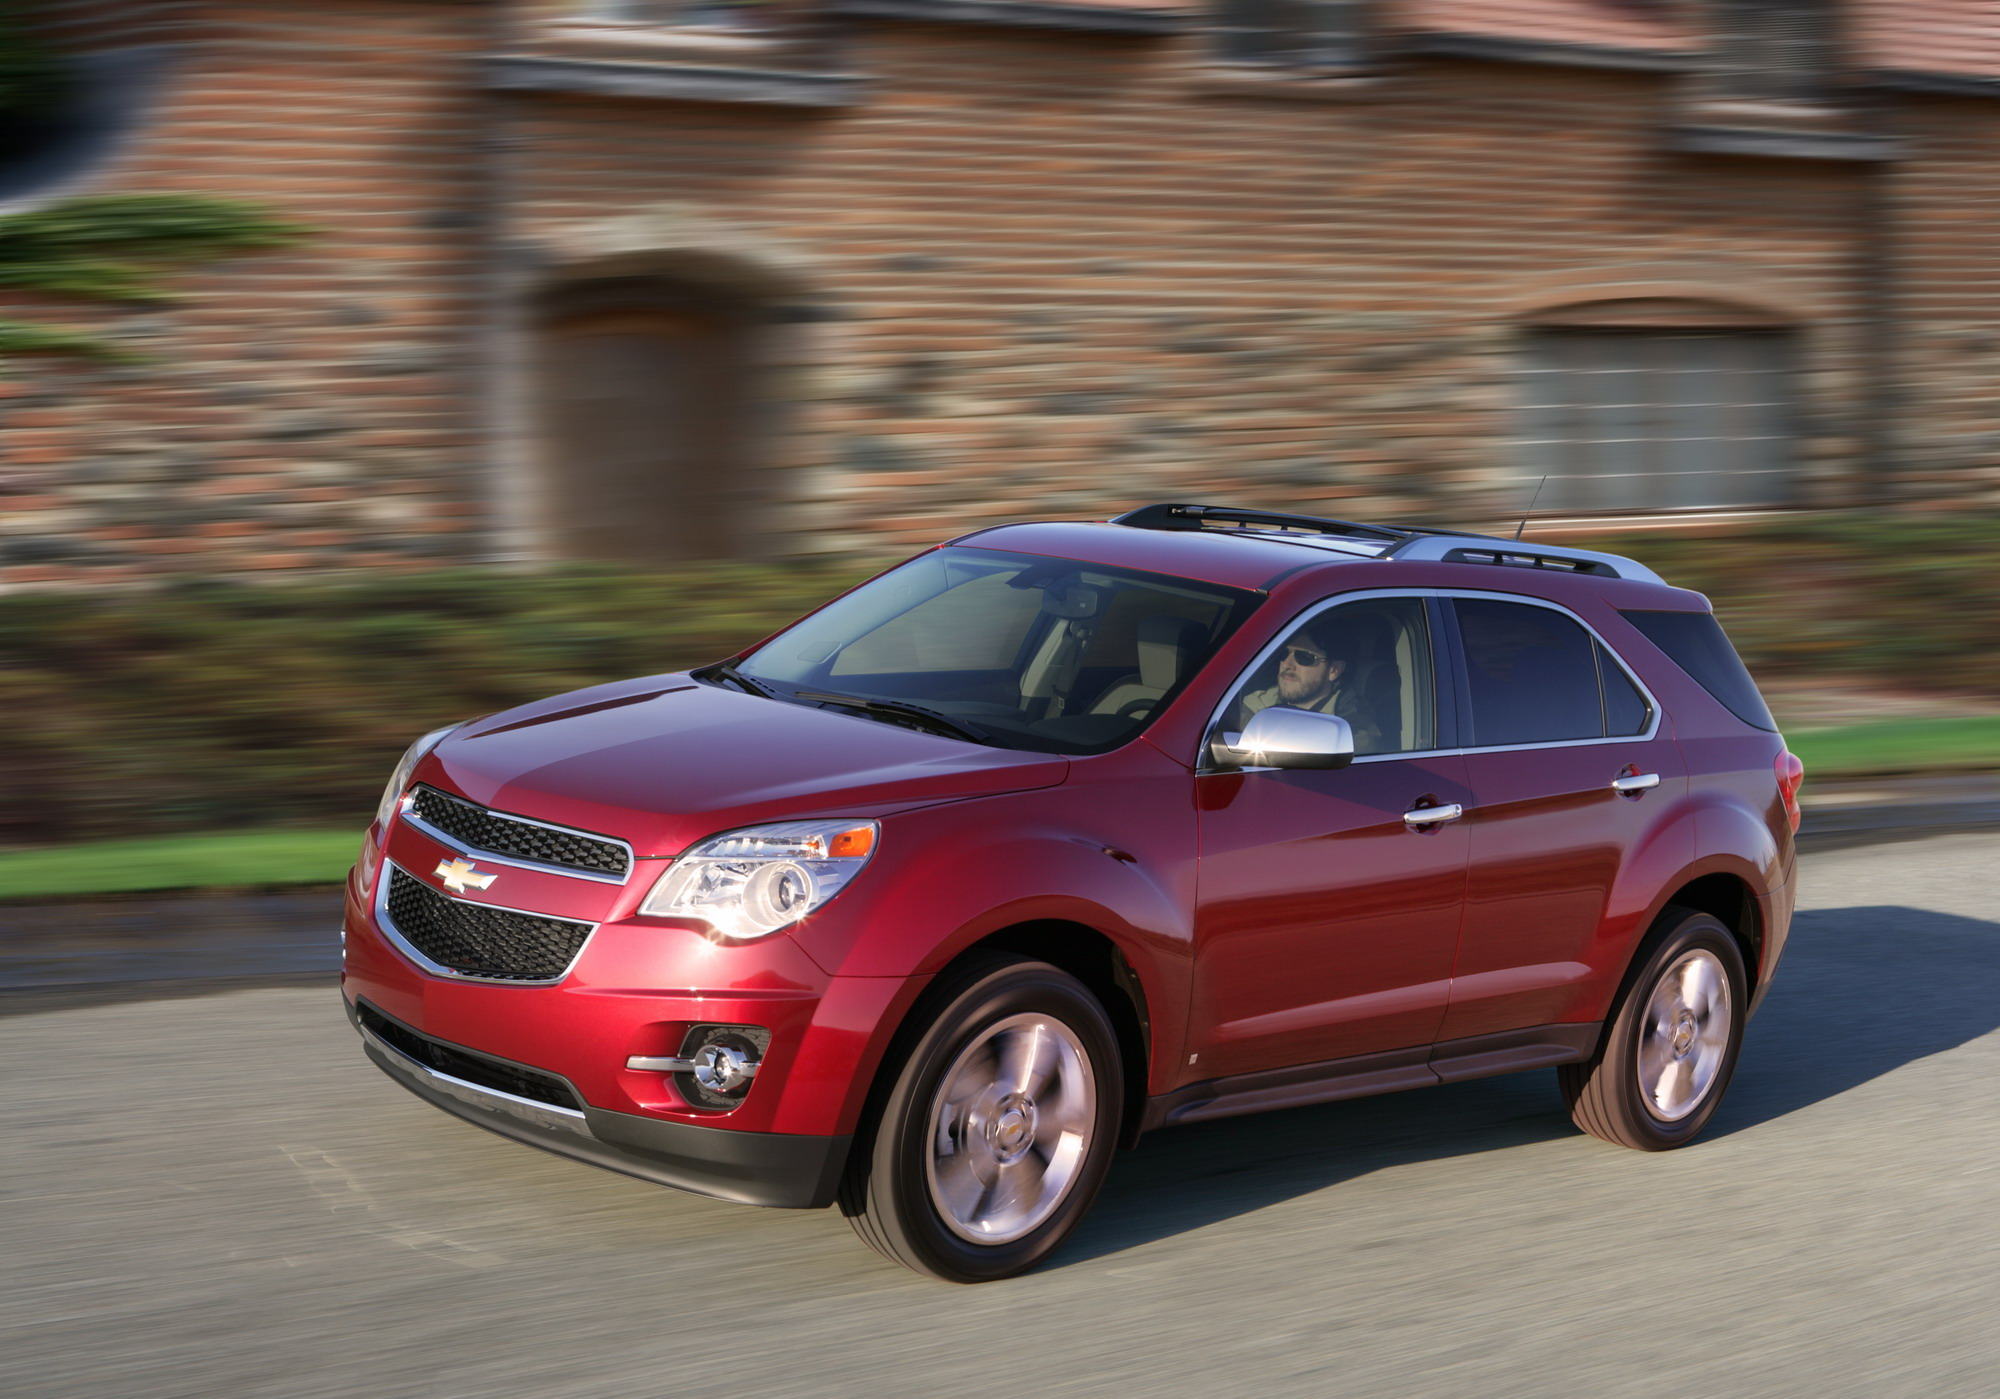 2010 chevrolet equinox review top speed. Black Bedroom Furniture Sets. Home Design Ideas